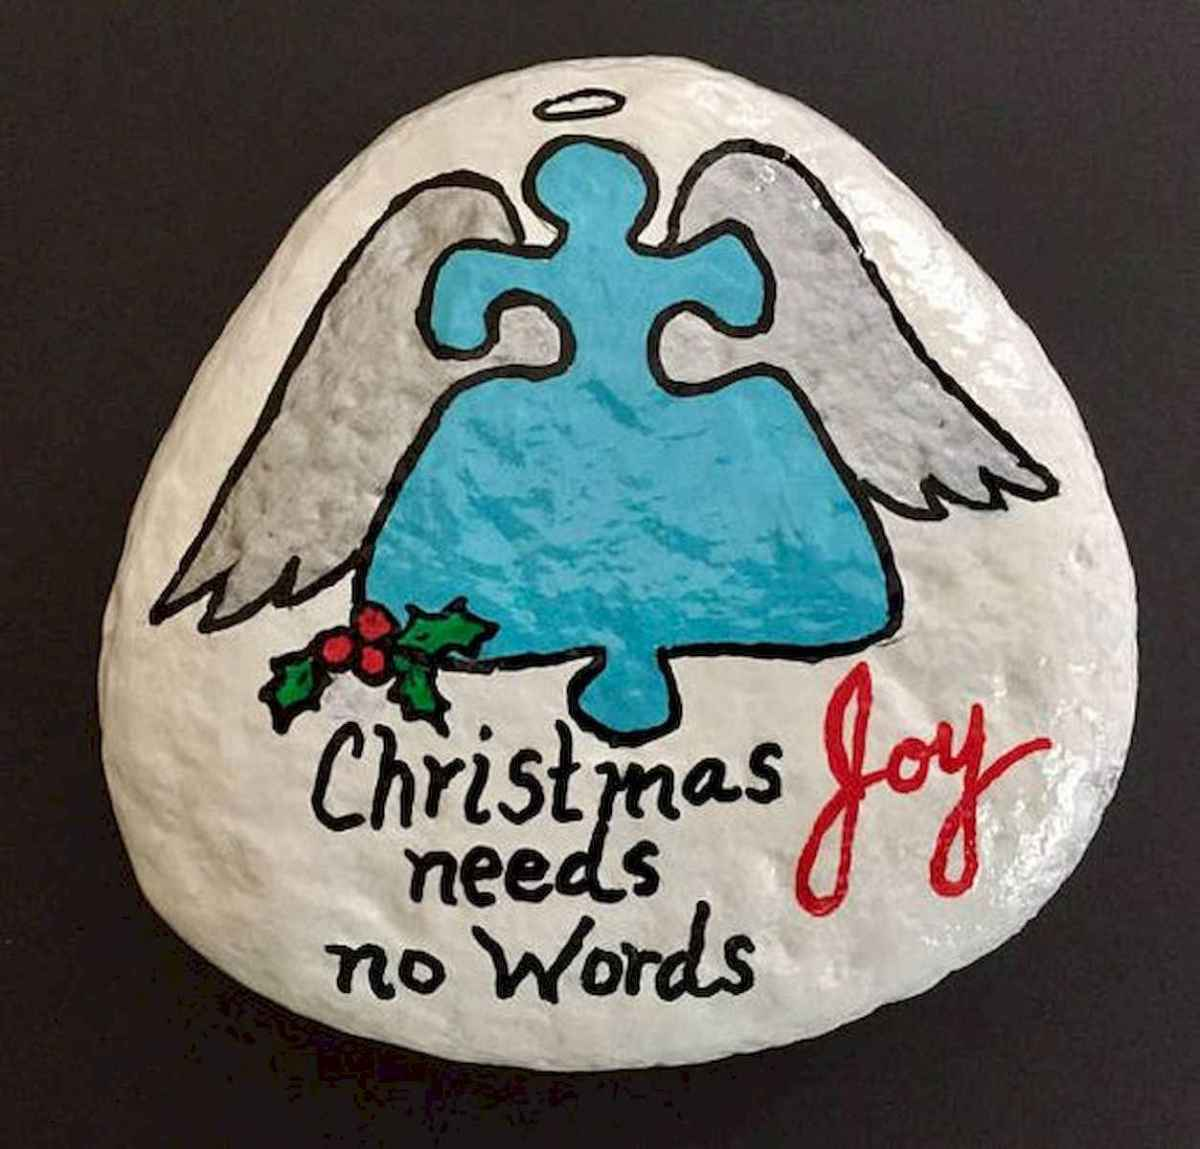 35 Awesome Painted Rocks Quotes Design Ideas (30)